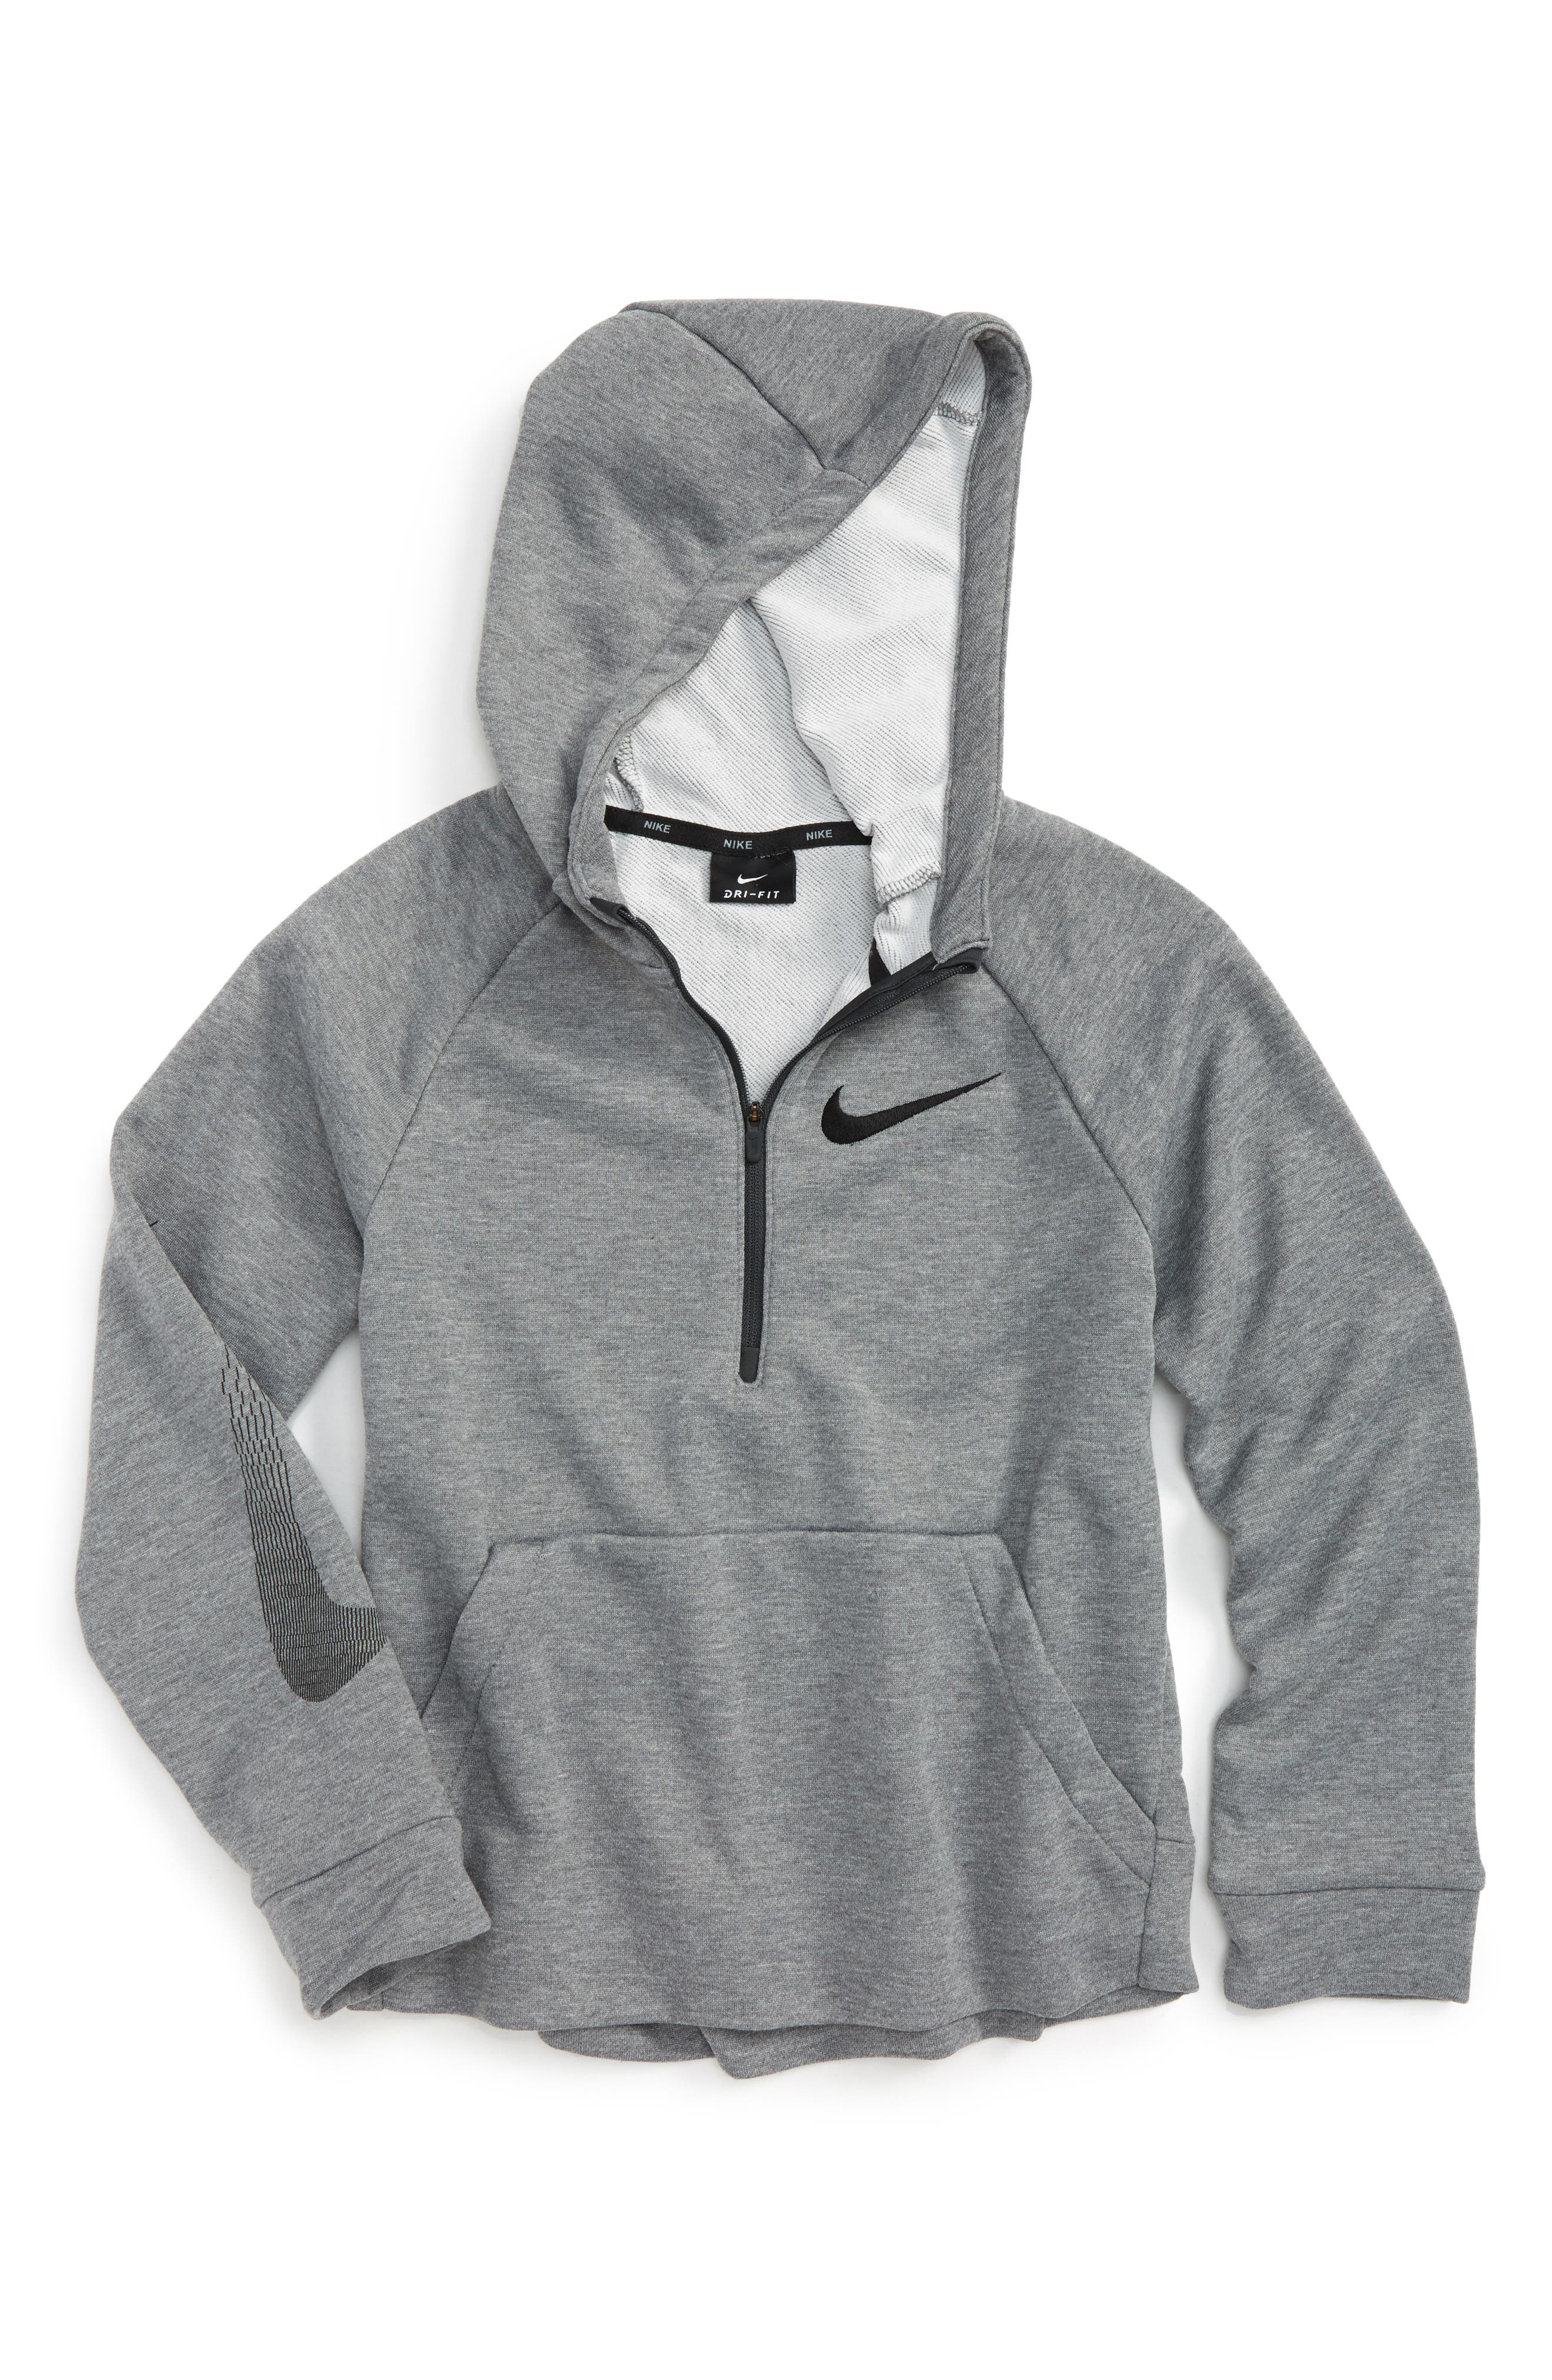 21eb432049667e Sale Nike Sweatshirts – EDGE Engineering and Consulting Limited